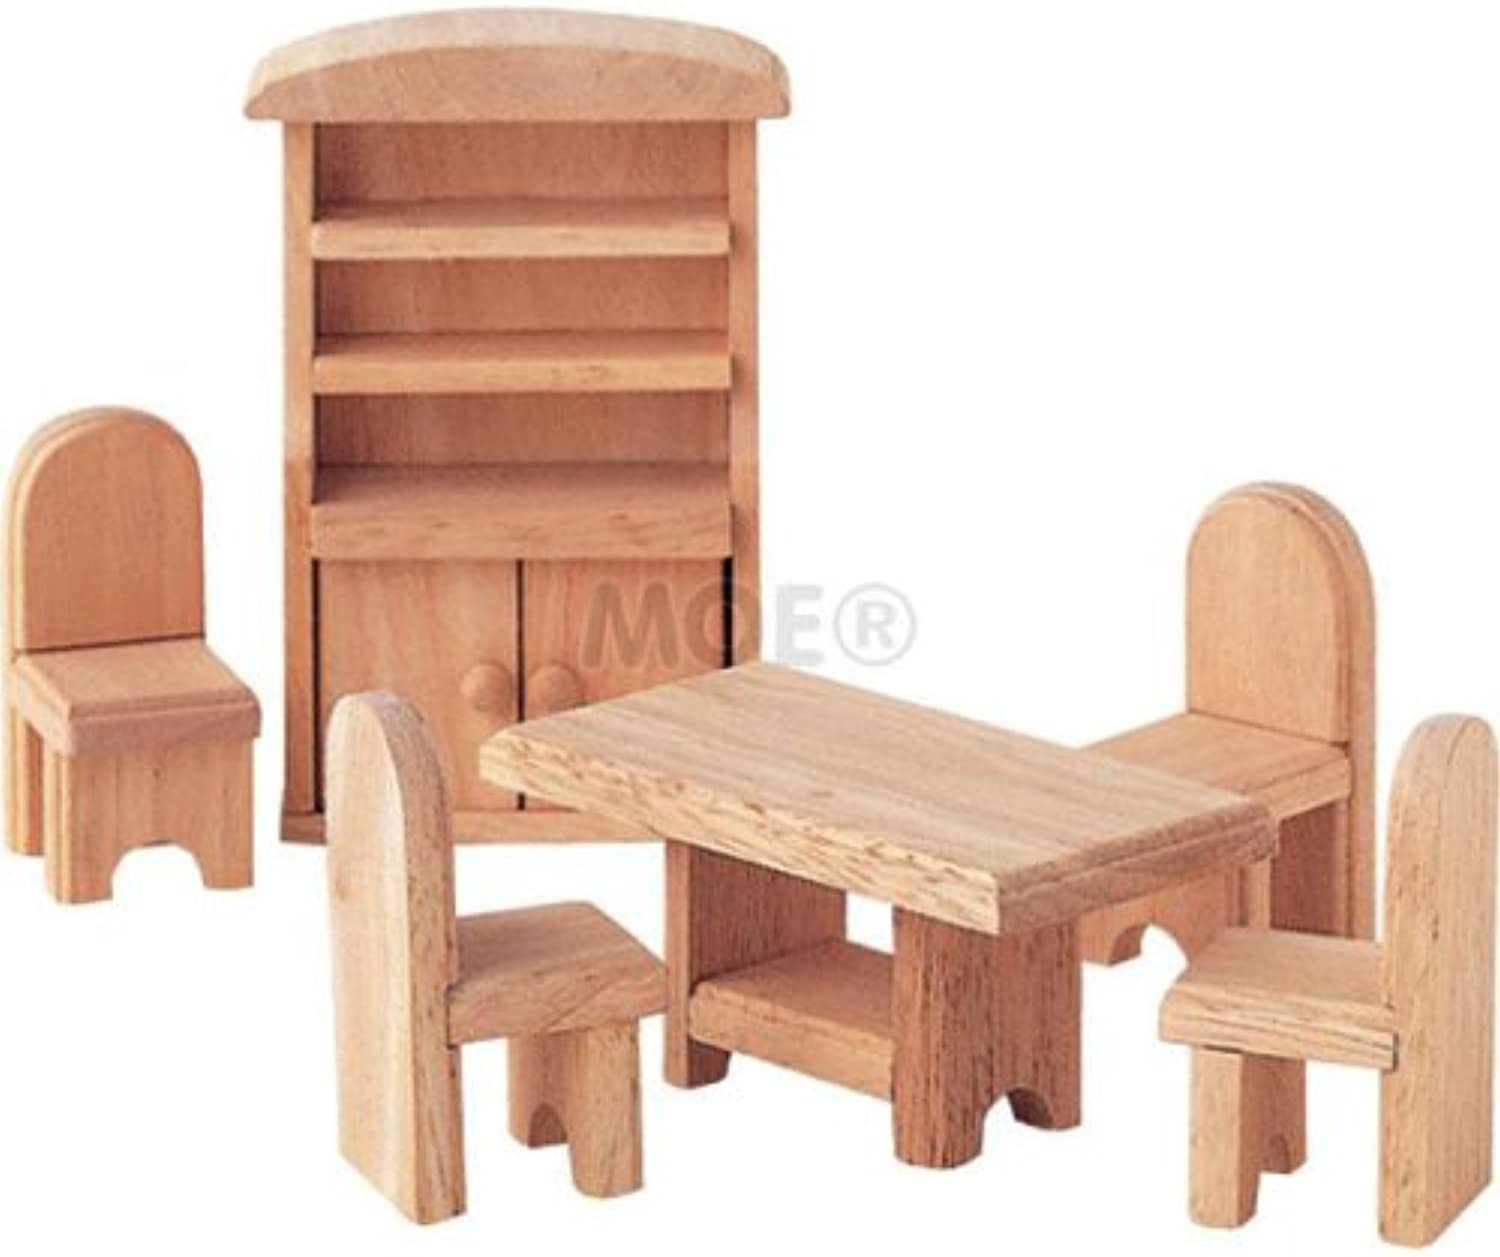 Plan Toys 9012  Dining Room (Wooden Dollhouse Furniture)